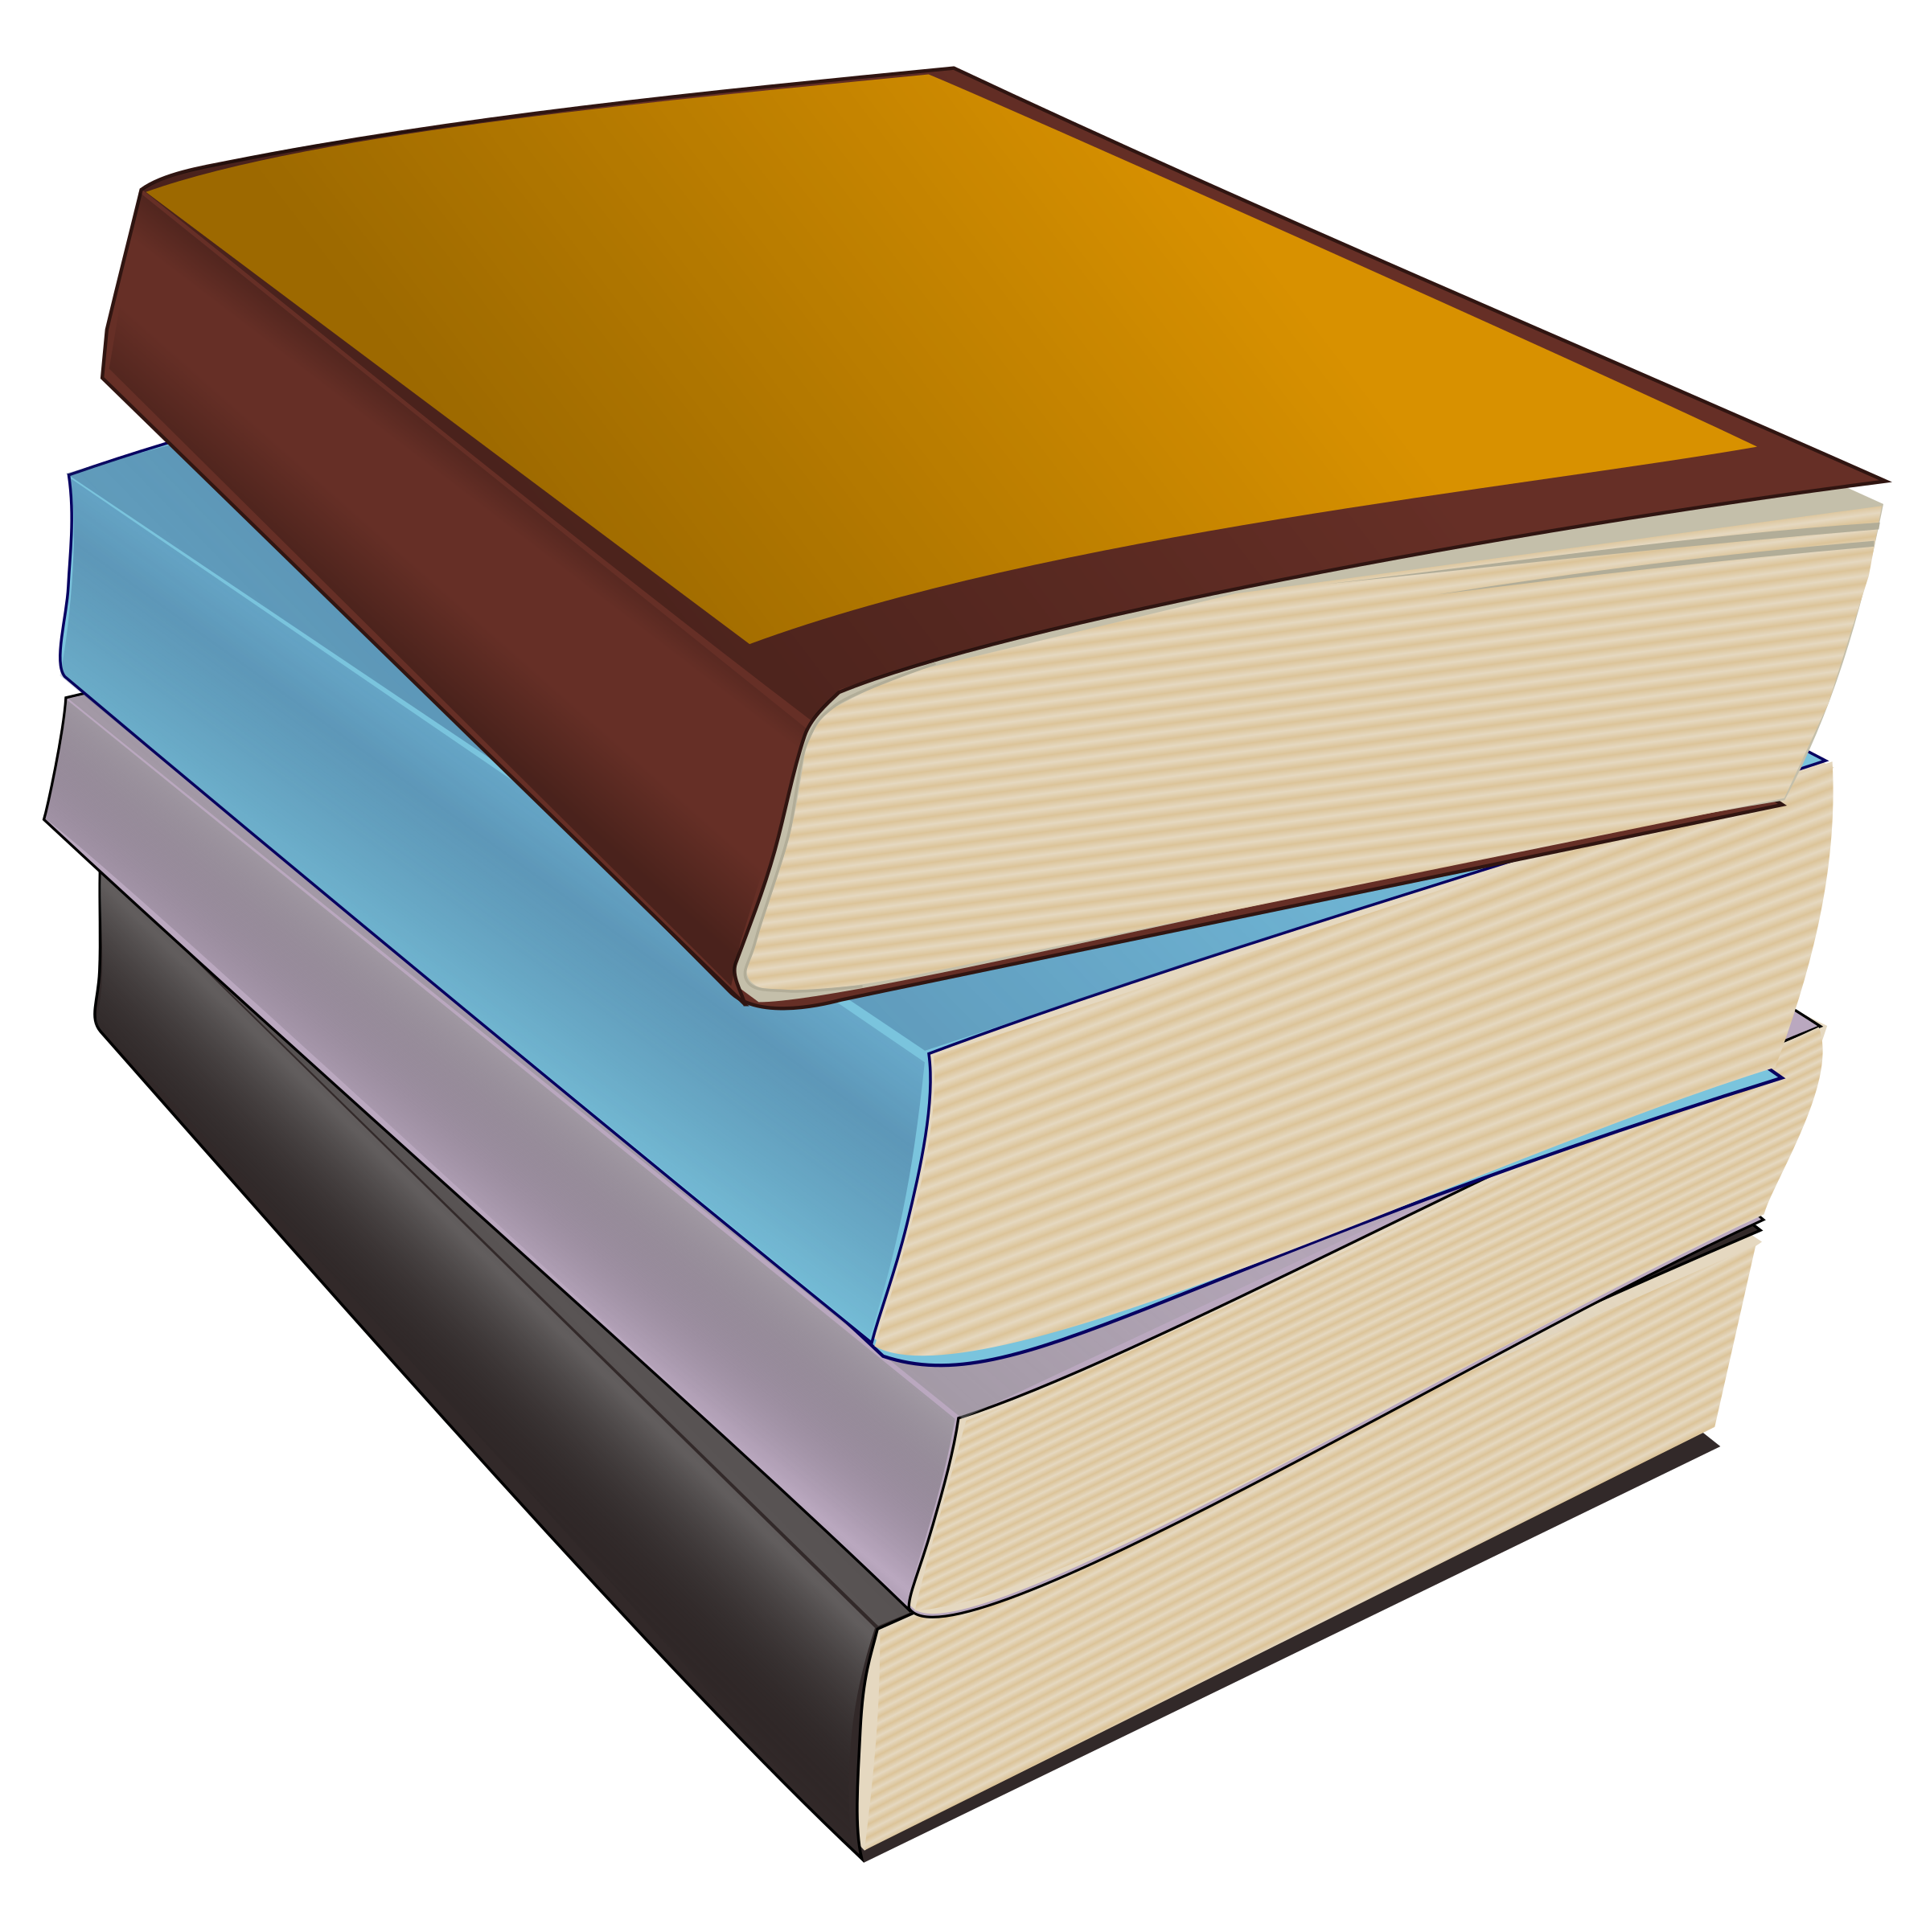 Of paperbacks big image. Library clipart stack book